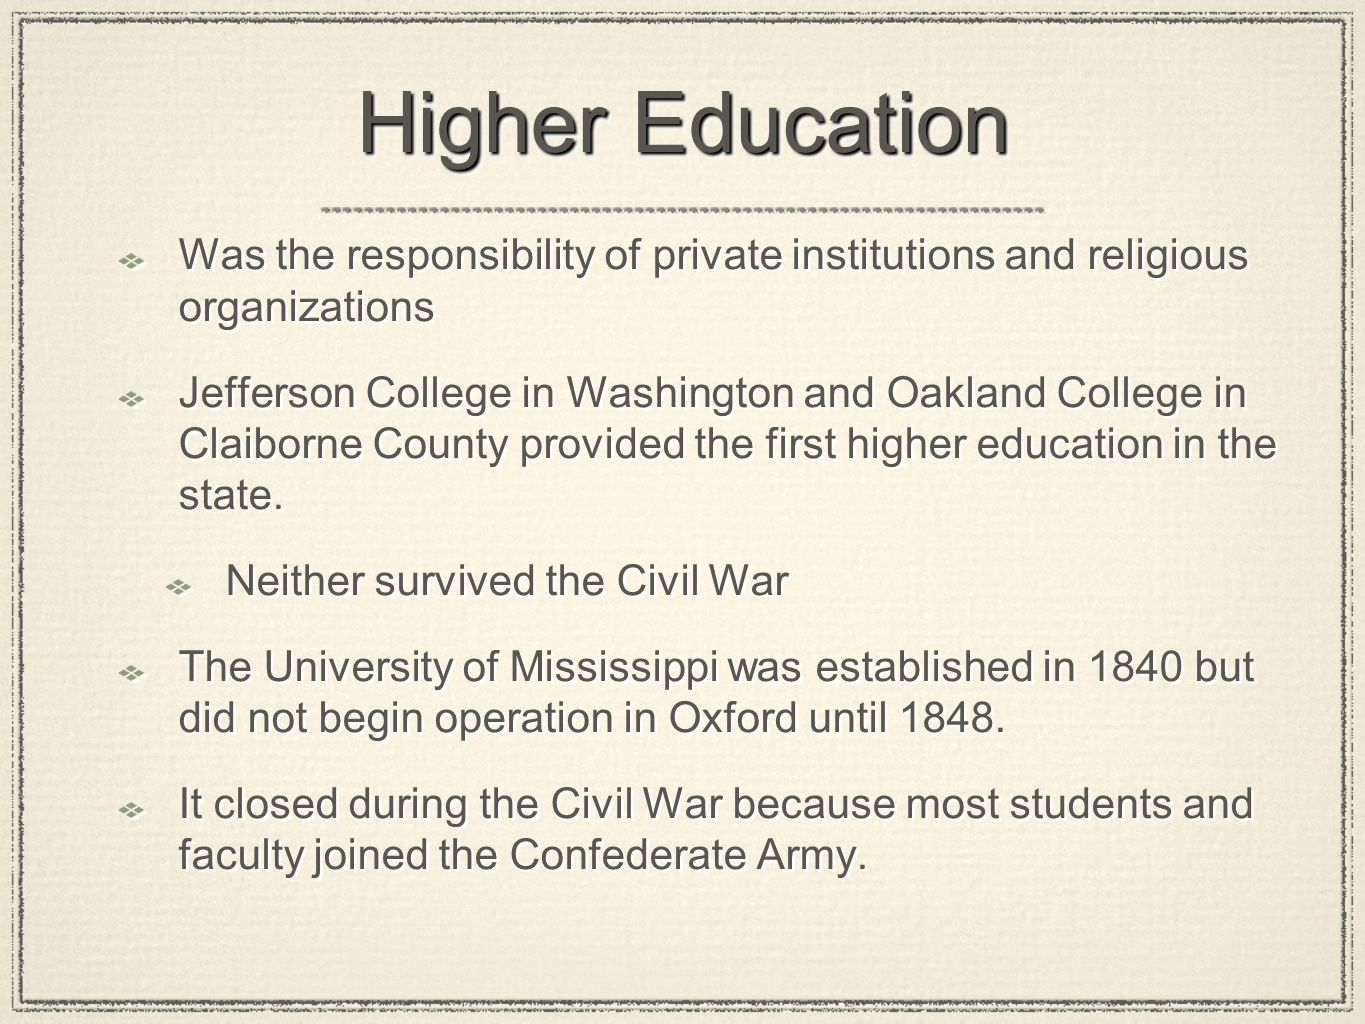 Higher Education Was the responsibility of private institutions and religious organizations.